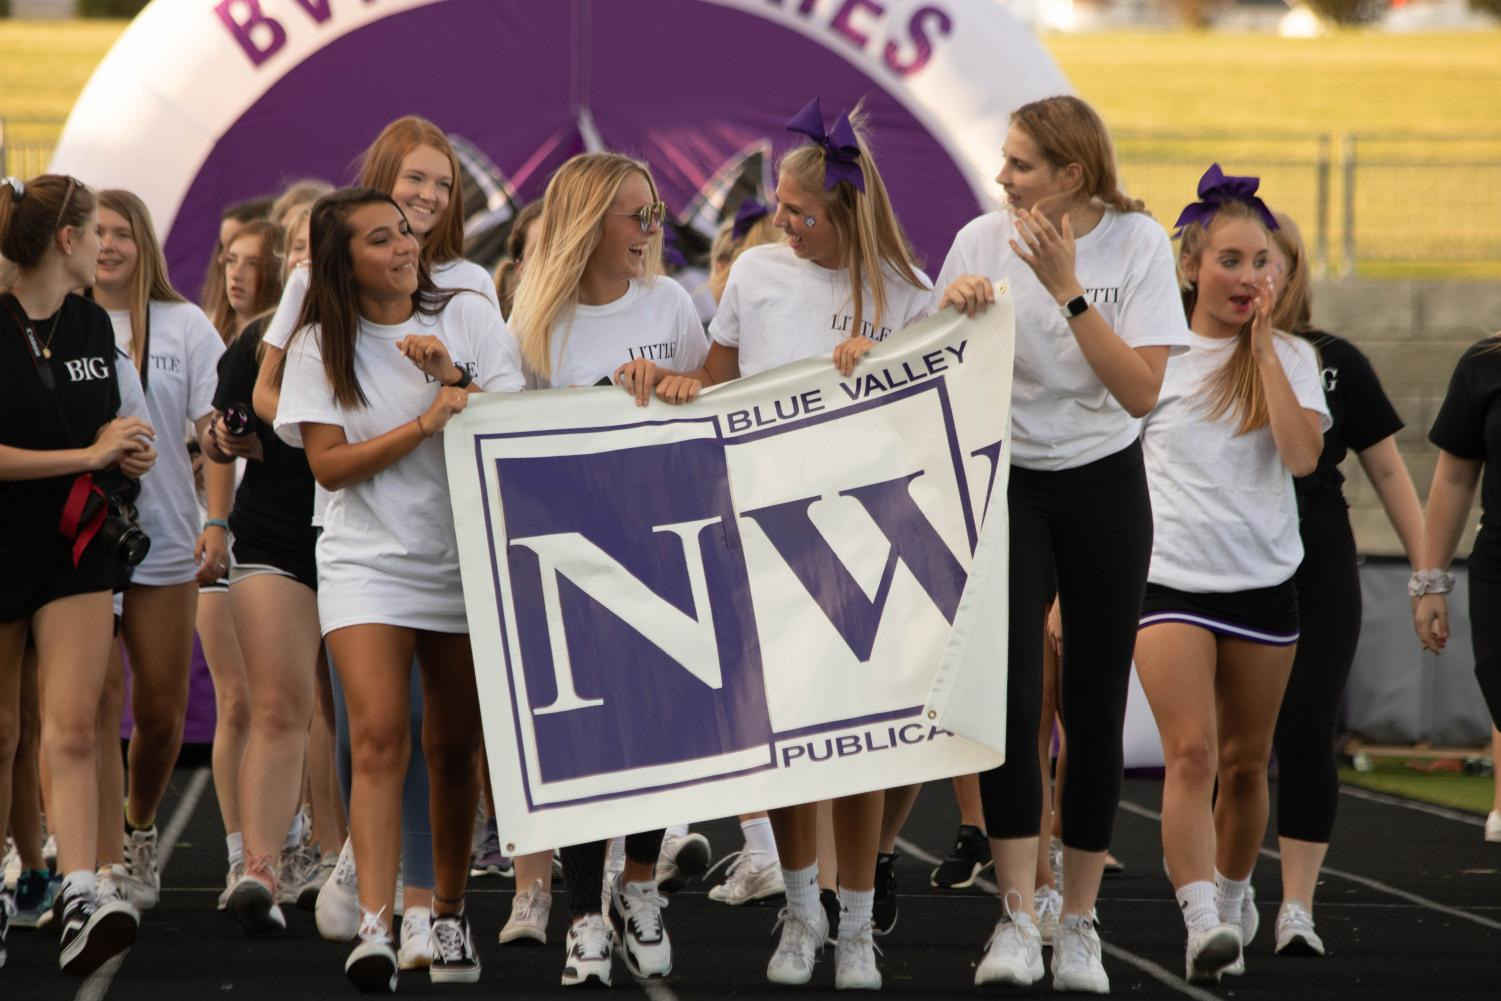 BVNW+Yearbook+staff+walks+through+the+tunnel+and+across+the+track+during+the+Husky+Night+parade%2C+on+Aug.+30.+